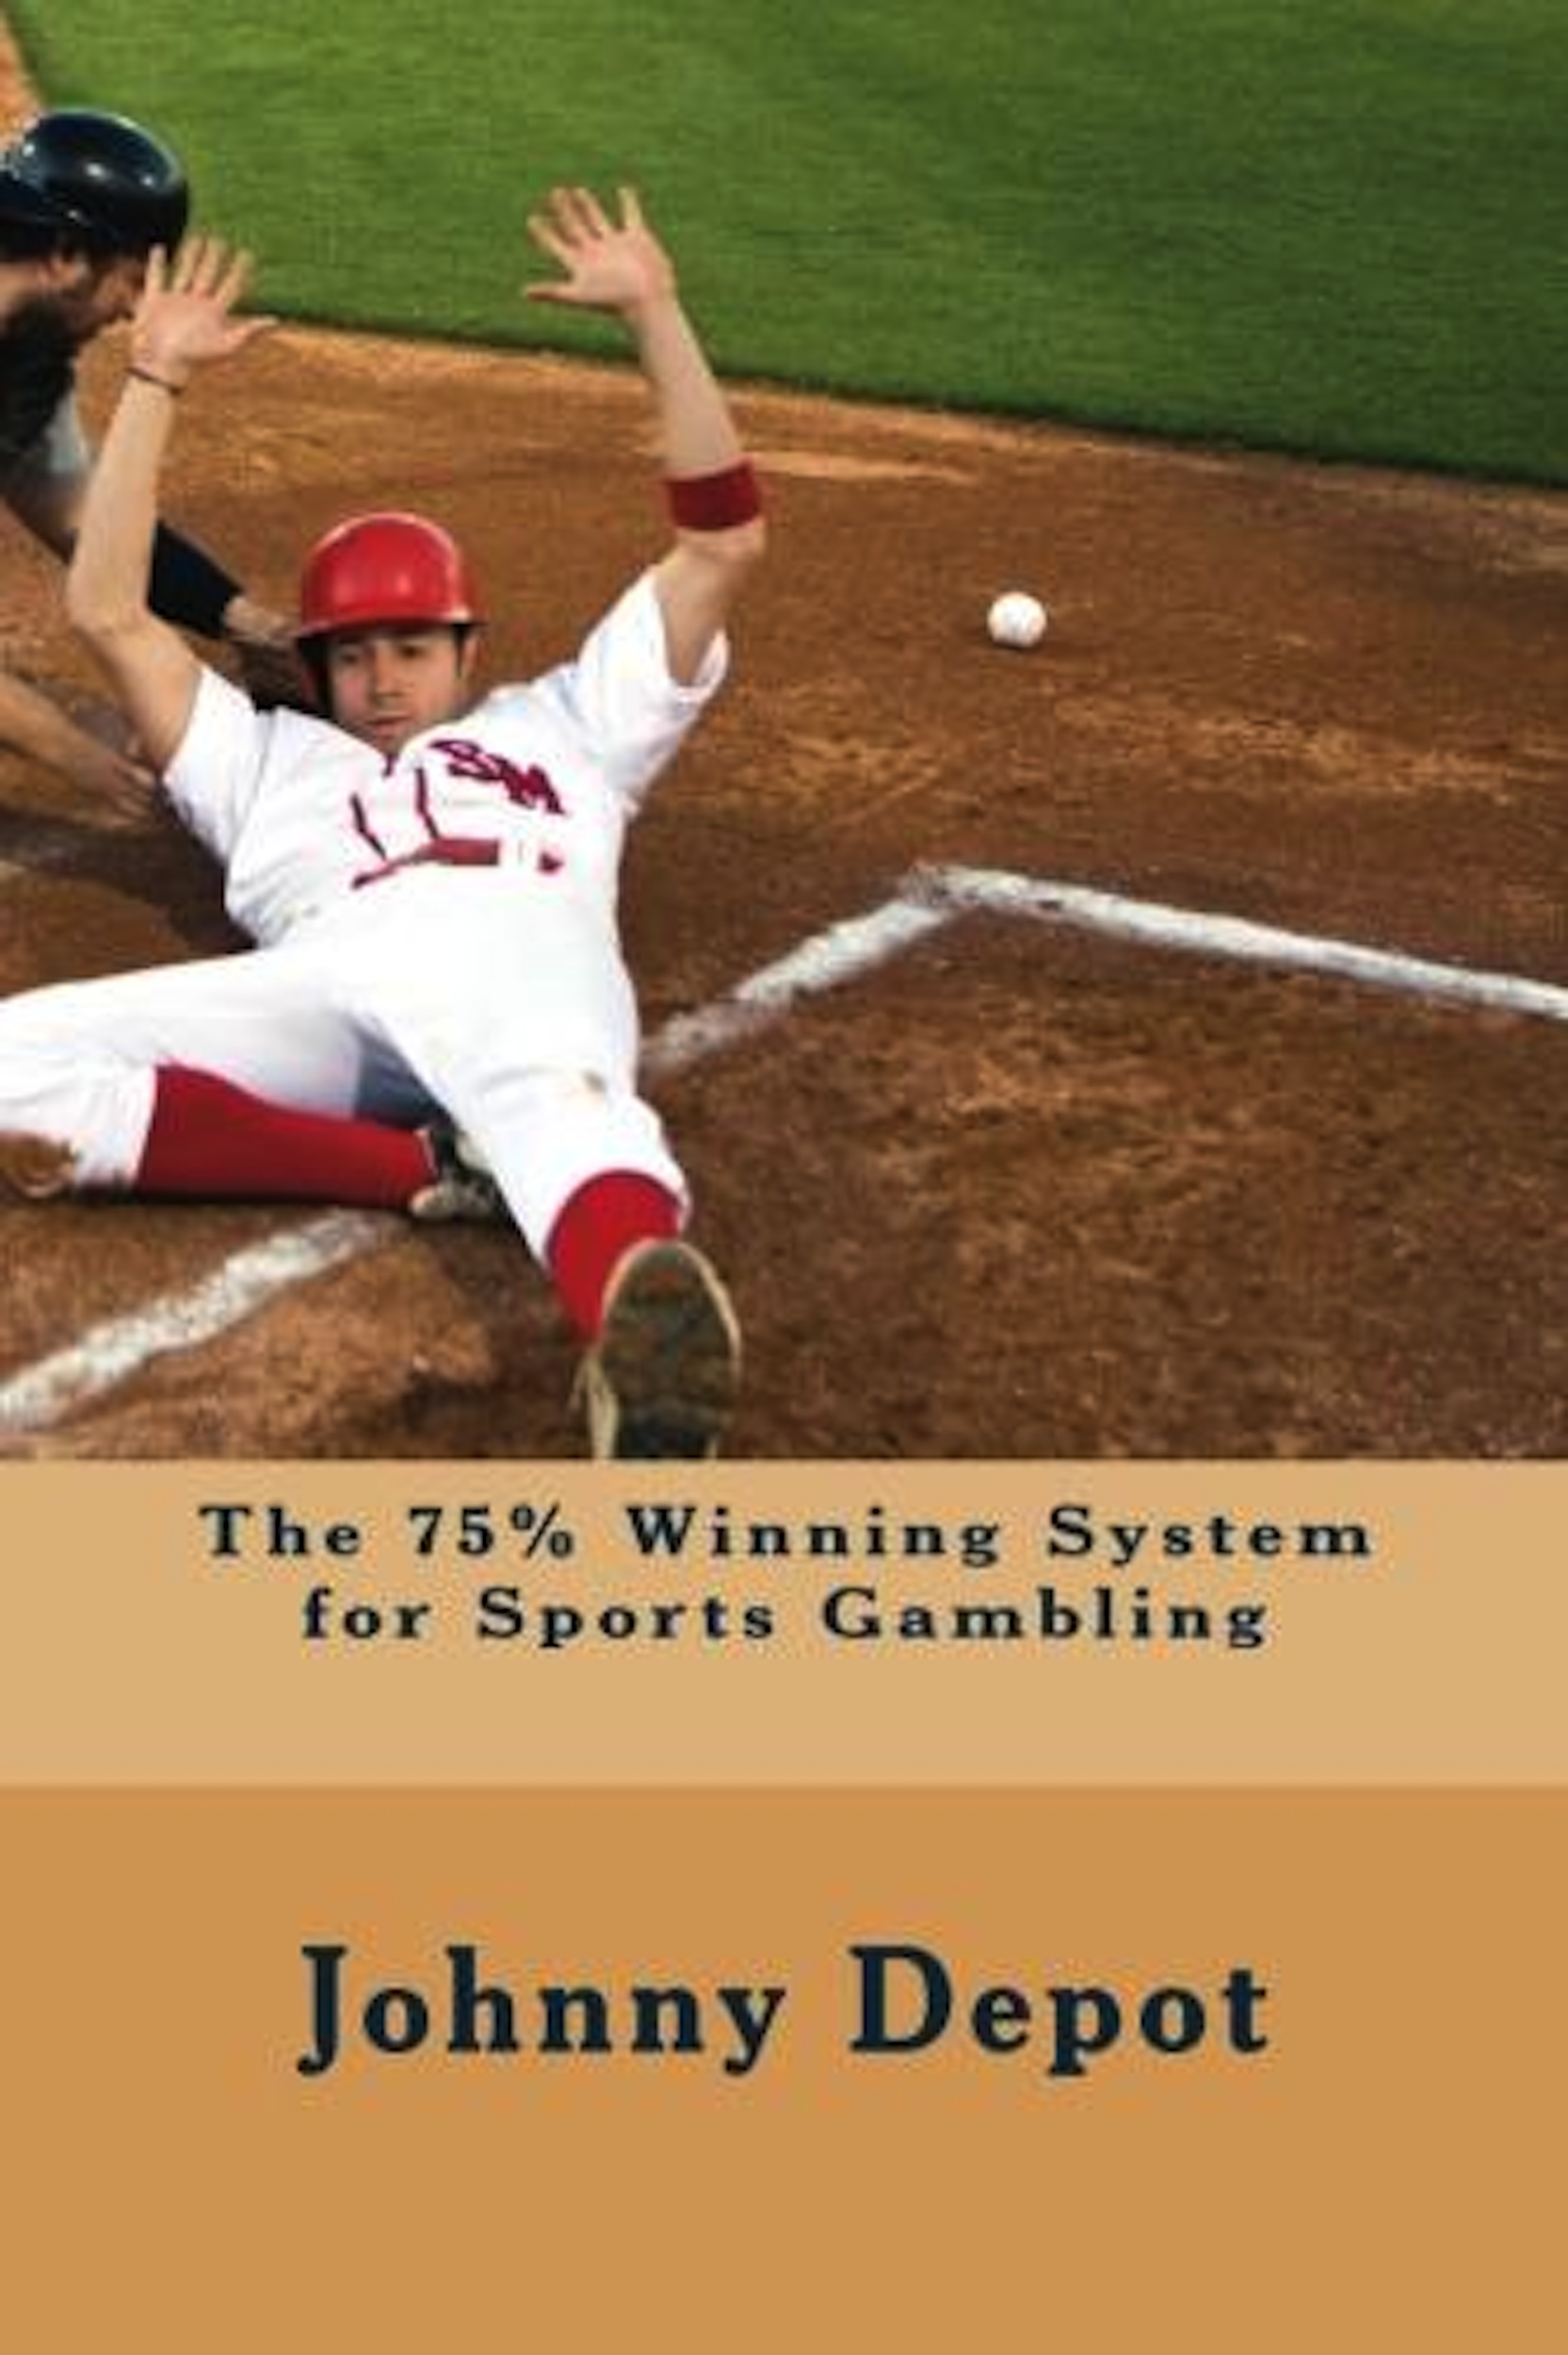 Ultimate sports gambling book justify gambling as a lawful contract